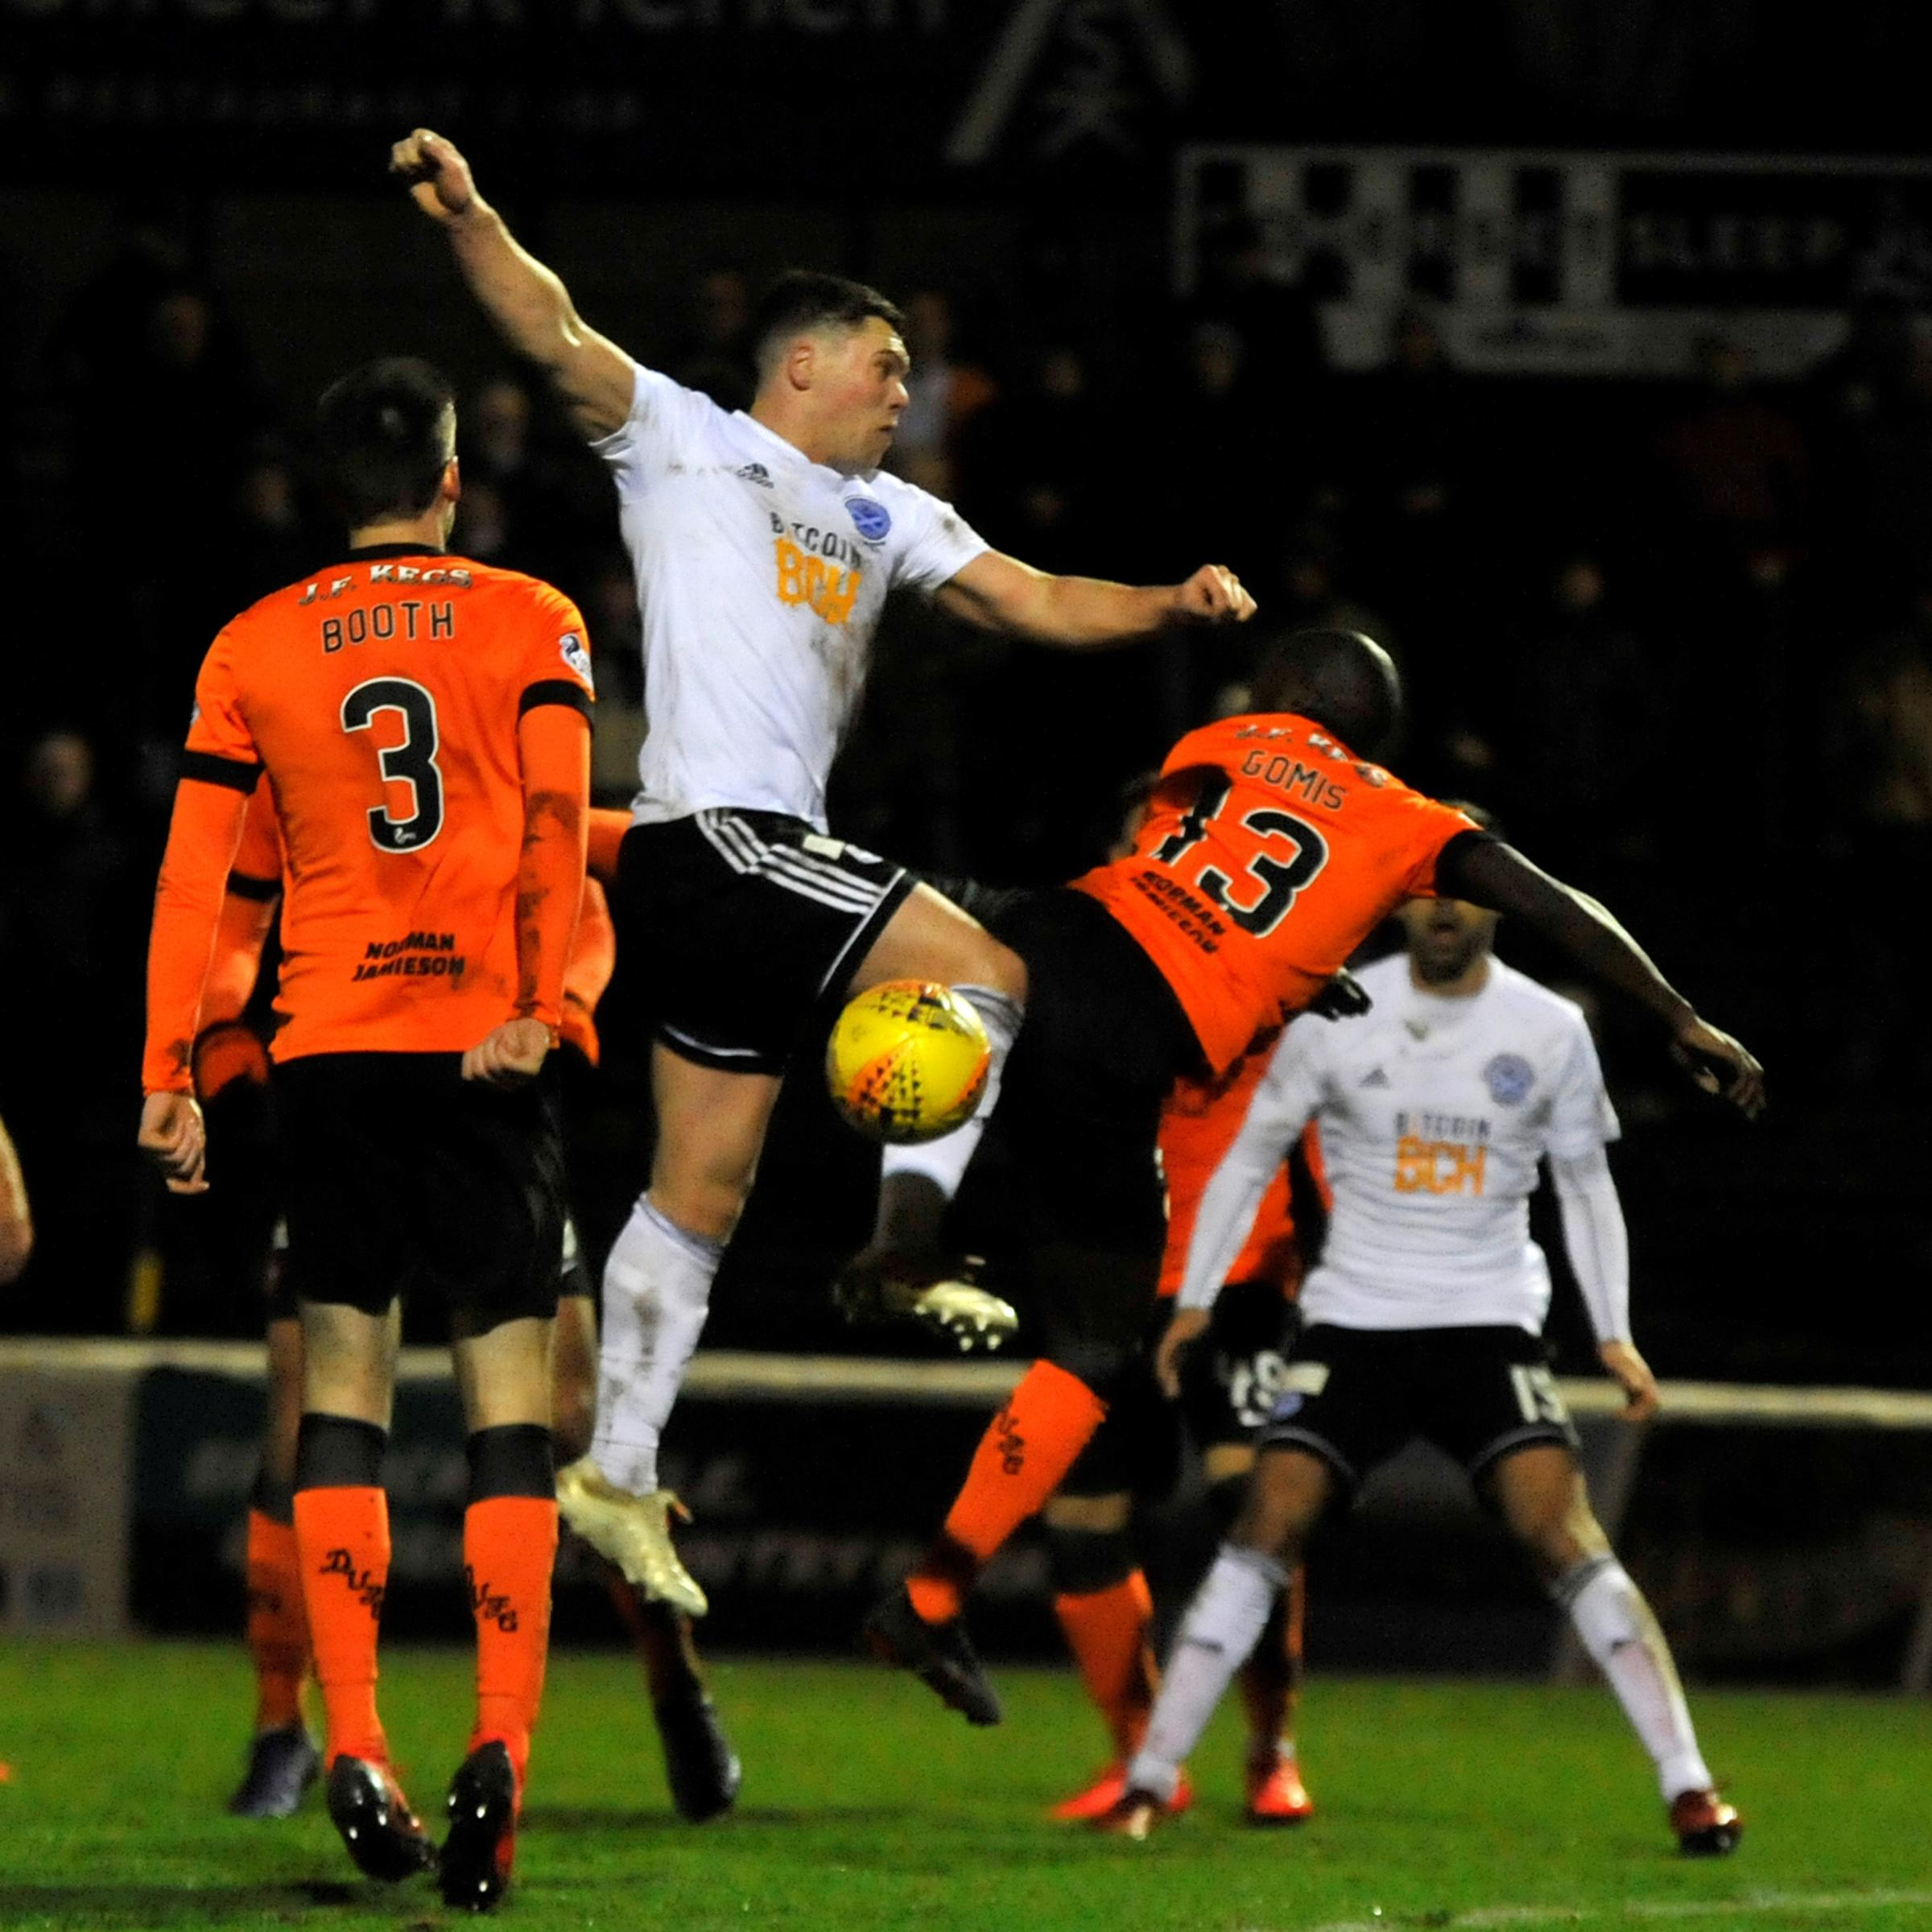 GOOD WIN: Ayr United defeated Dundee United